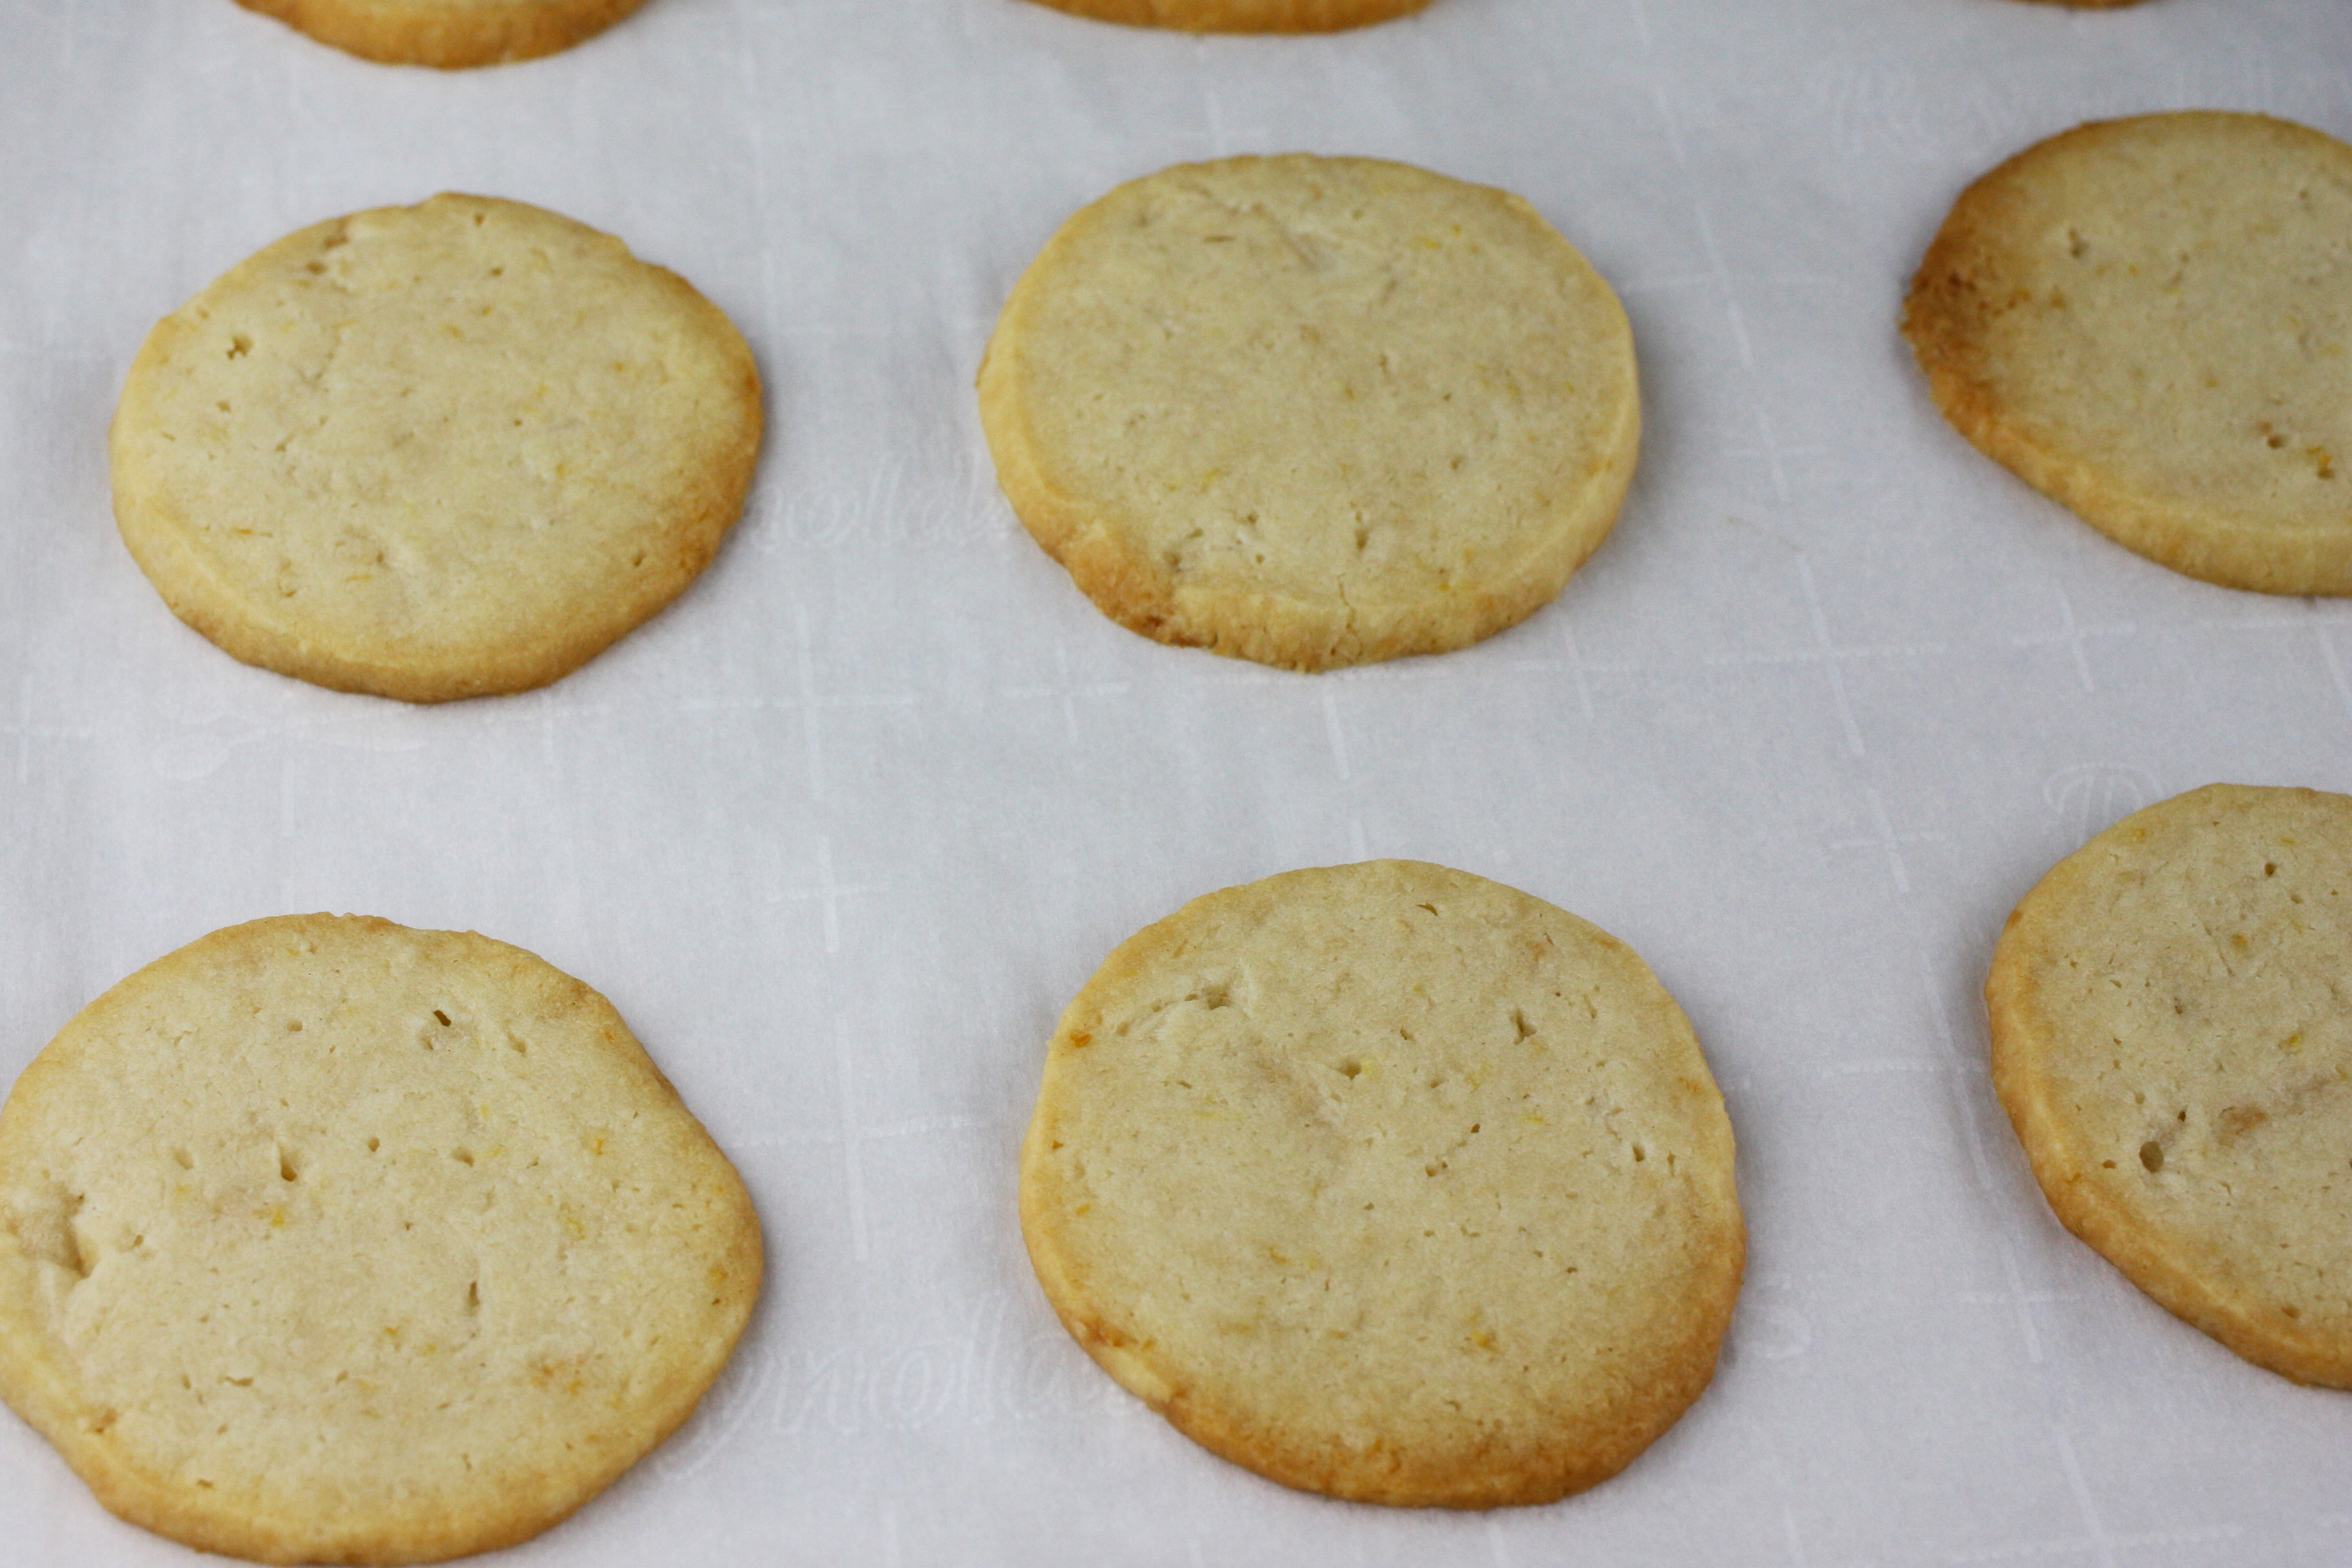 baked Lemon Sandwich Cookies on cookie sheet lined with parchment paper